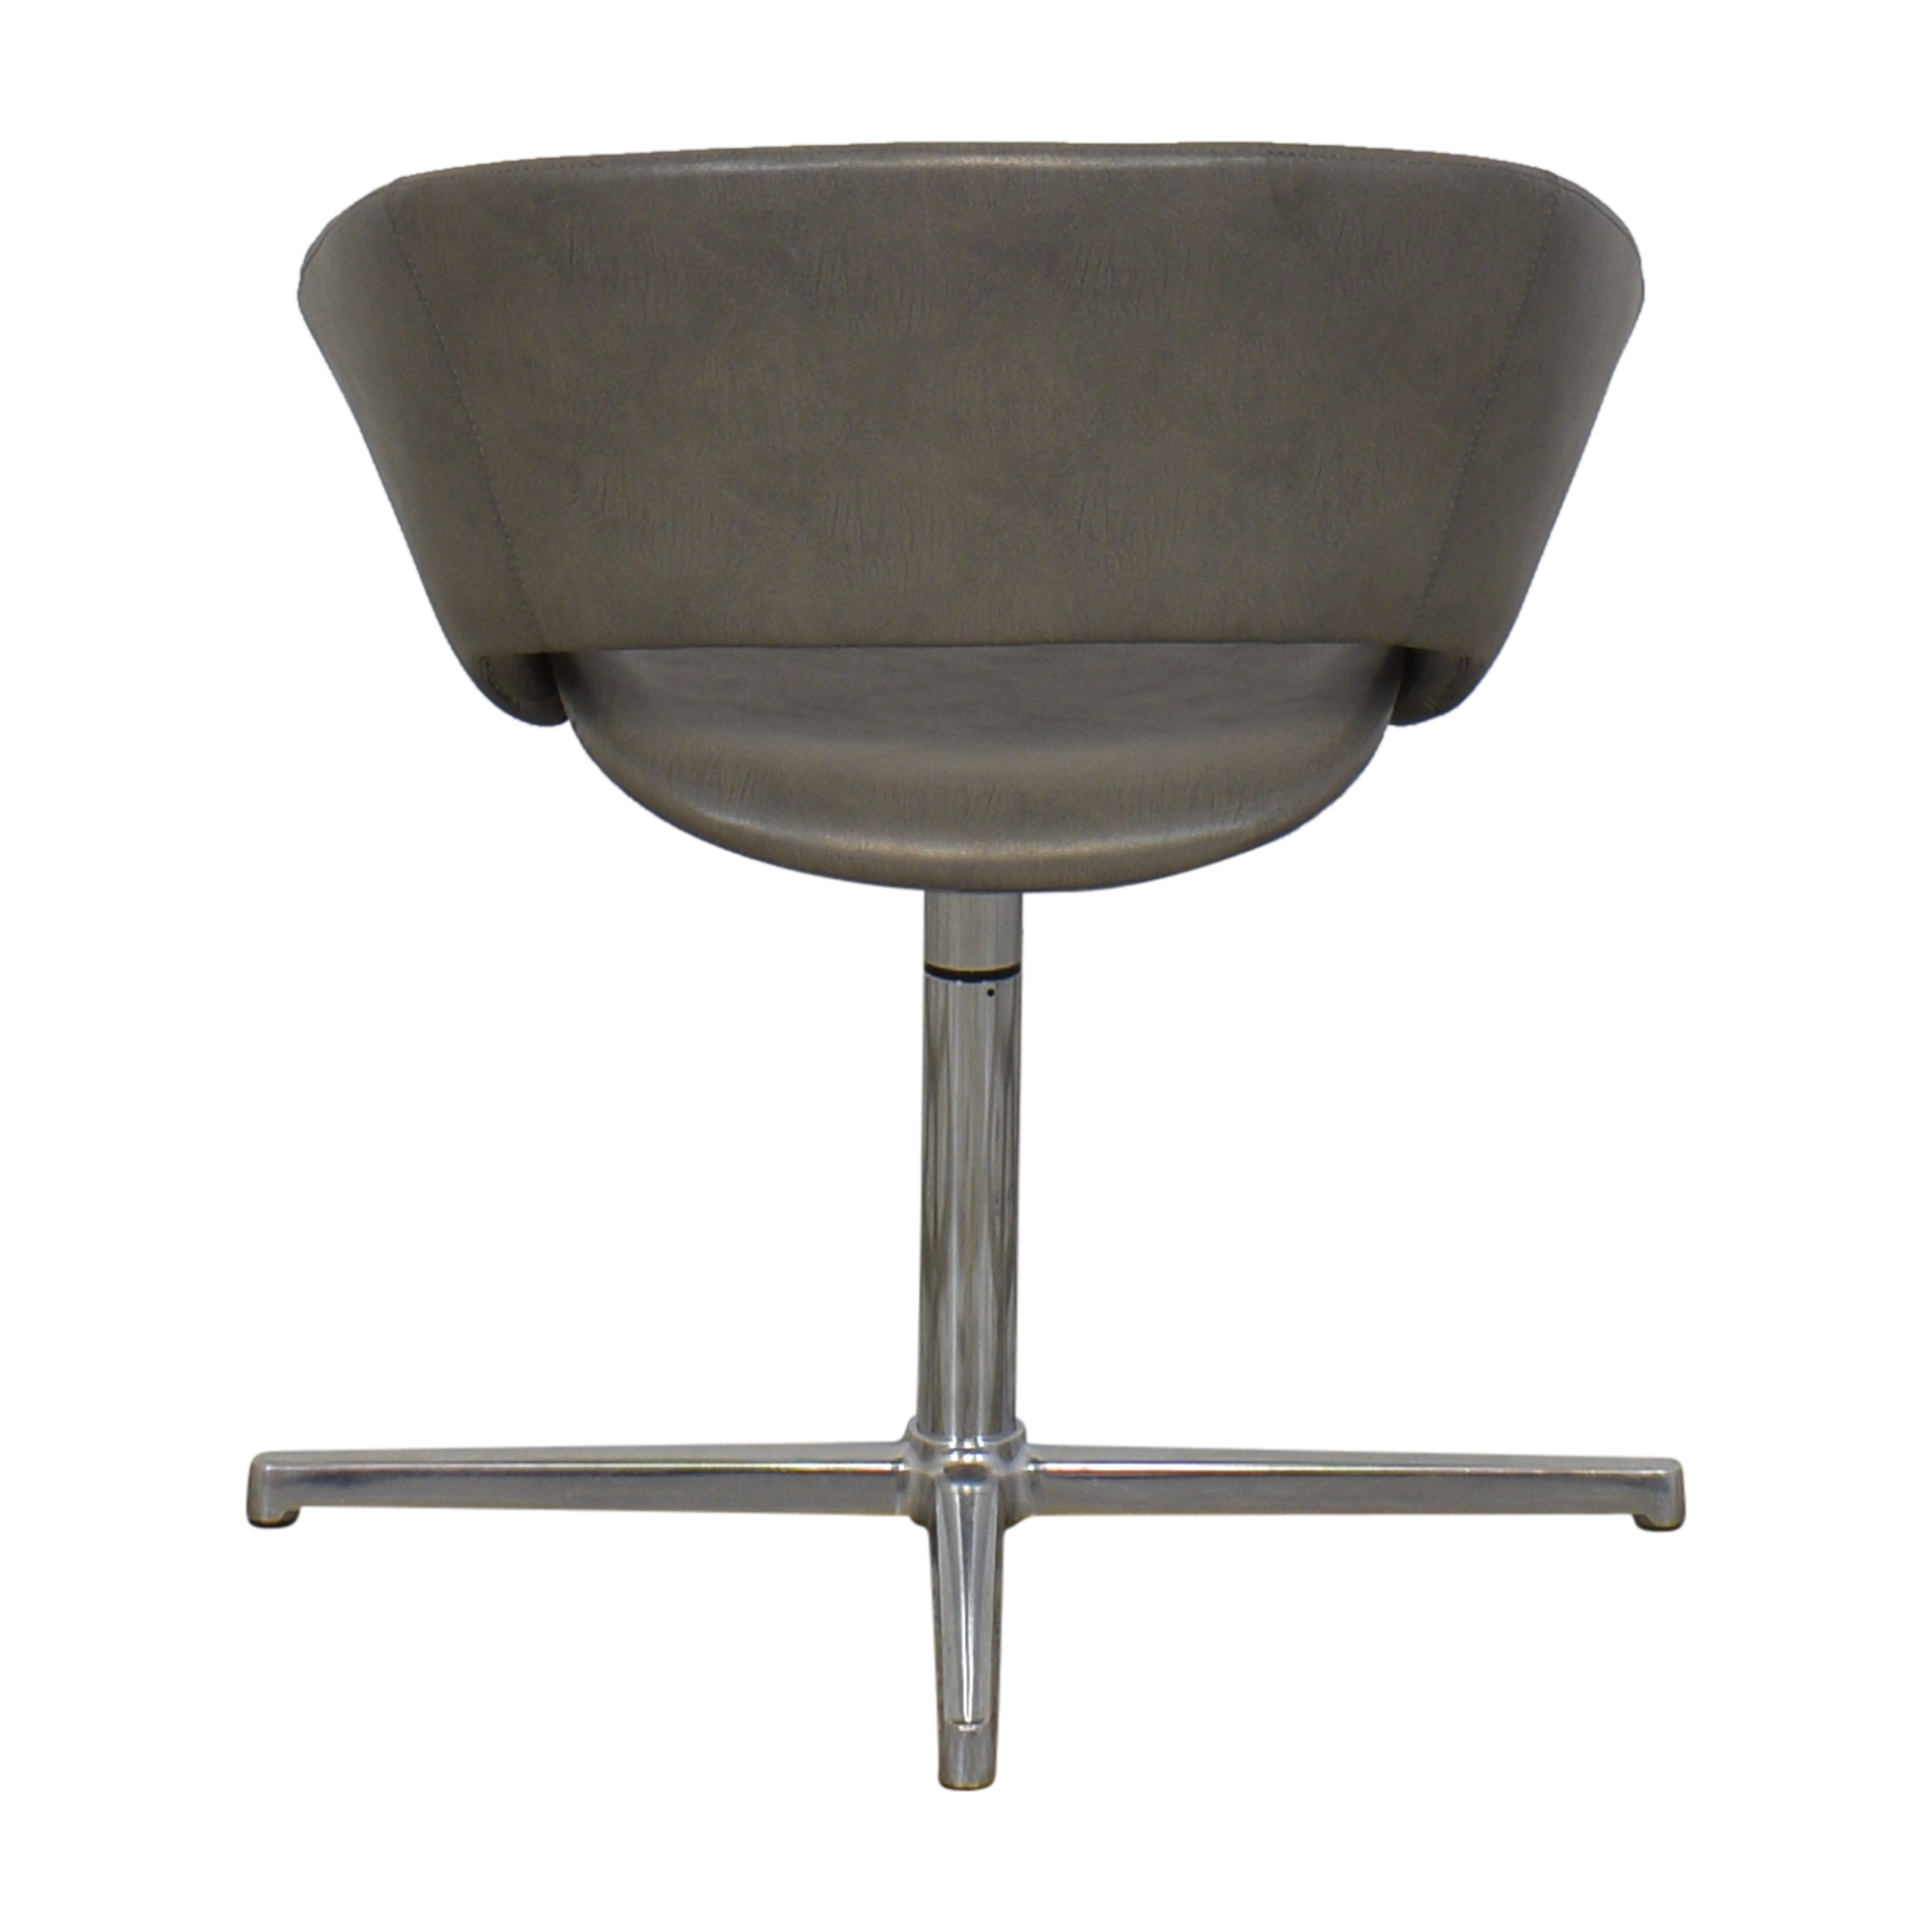 Leland International Leland Mod Pedestal Swivel Chair gray